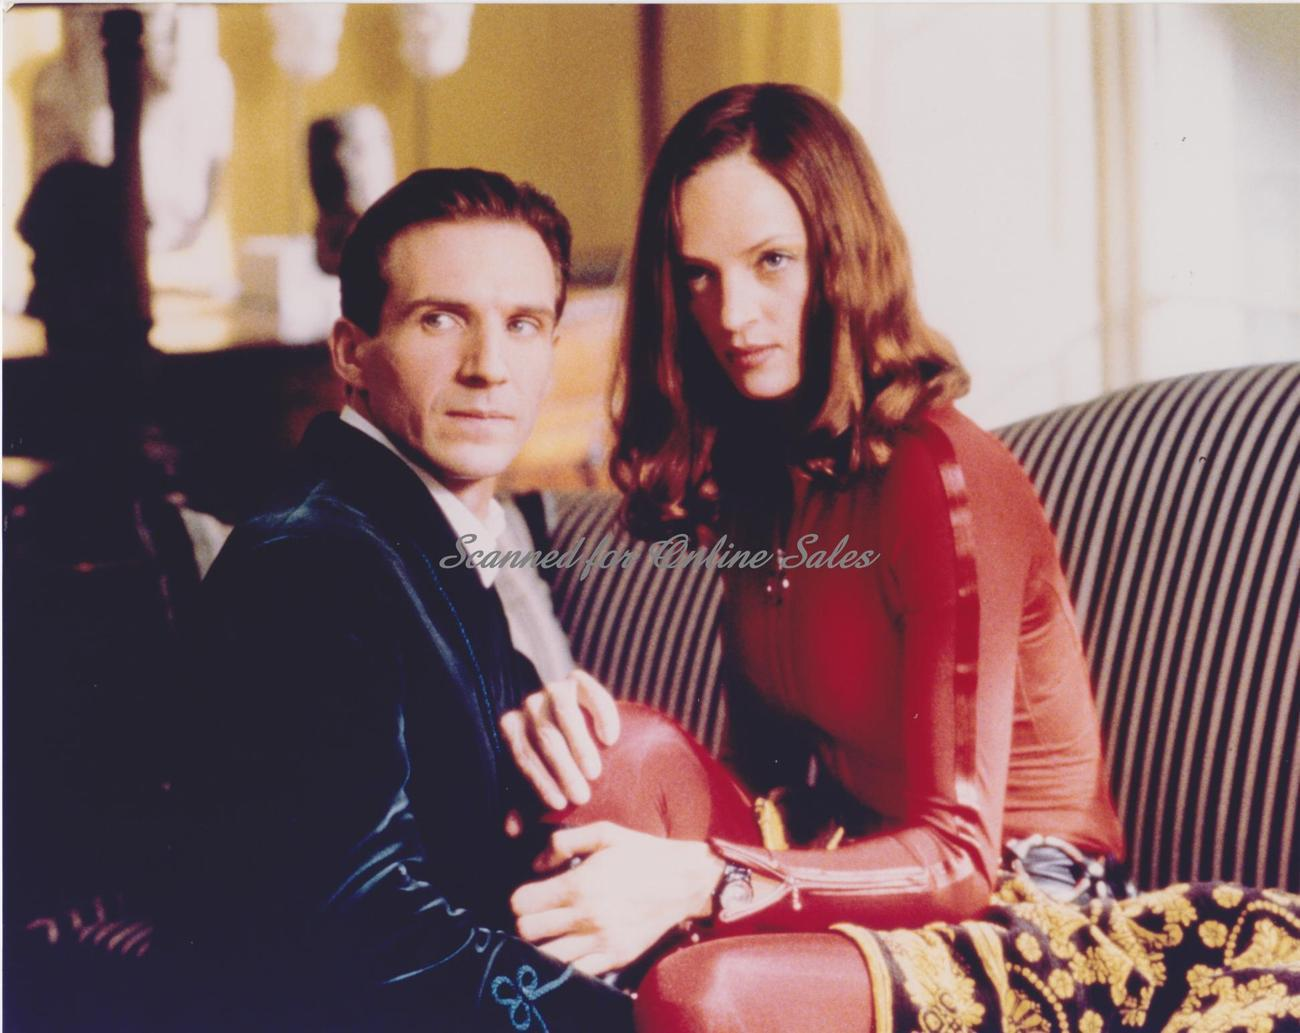 The Avengers Ralph Fiennes John Steed 8x10 Photo 1186211 - $9.99